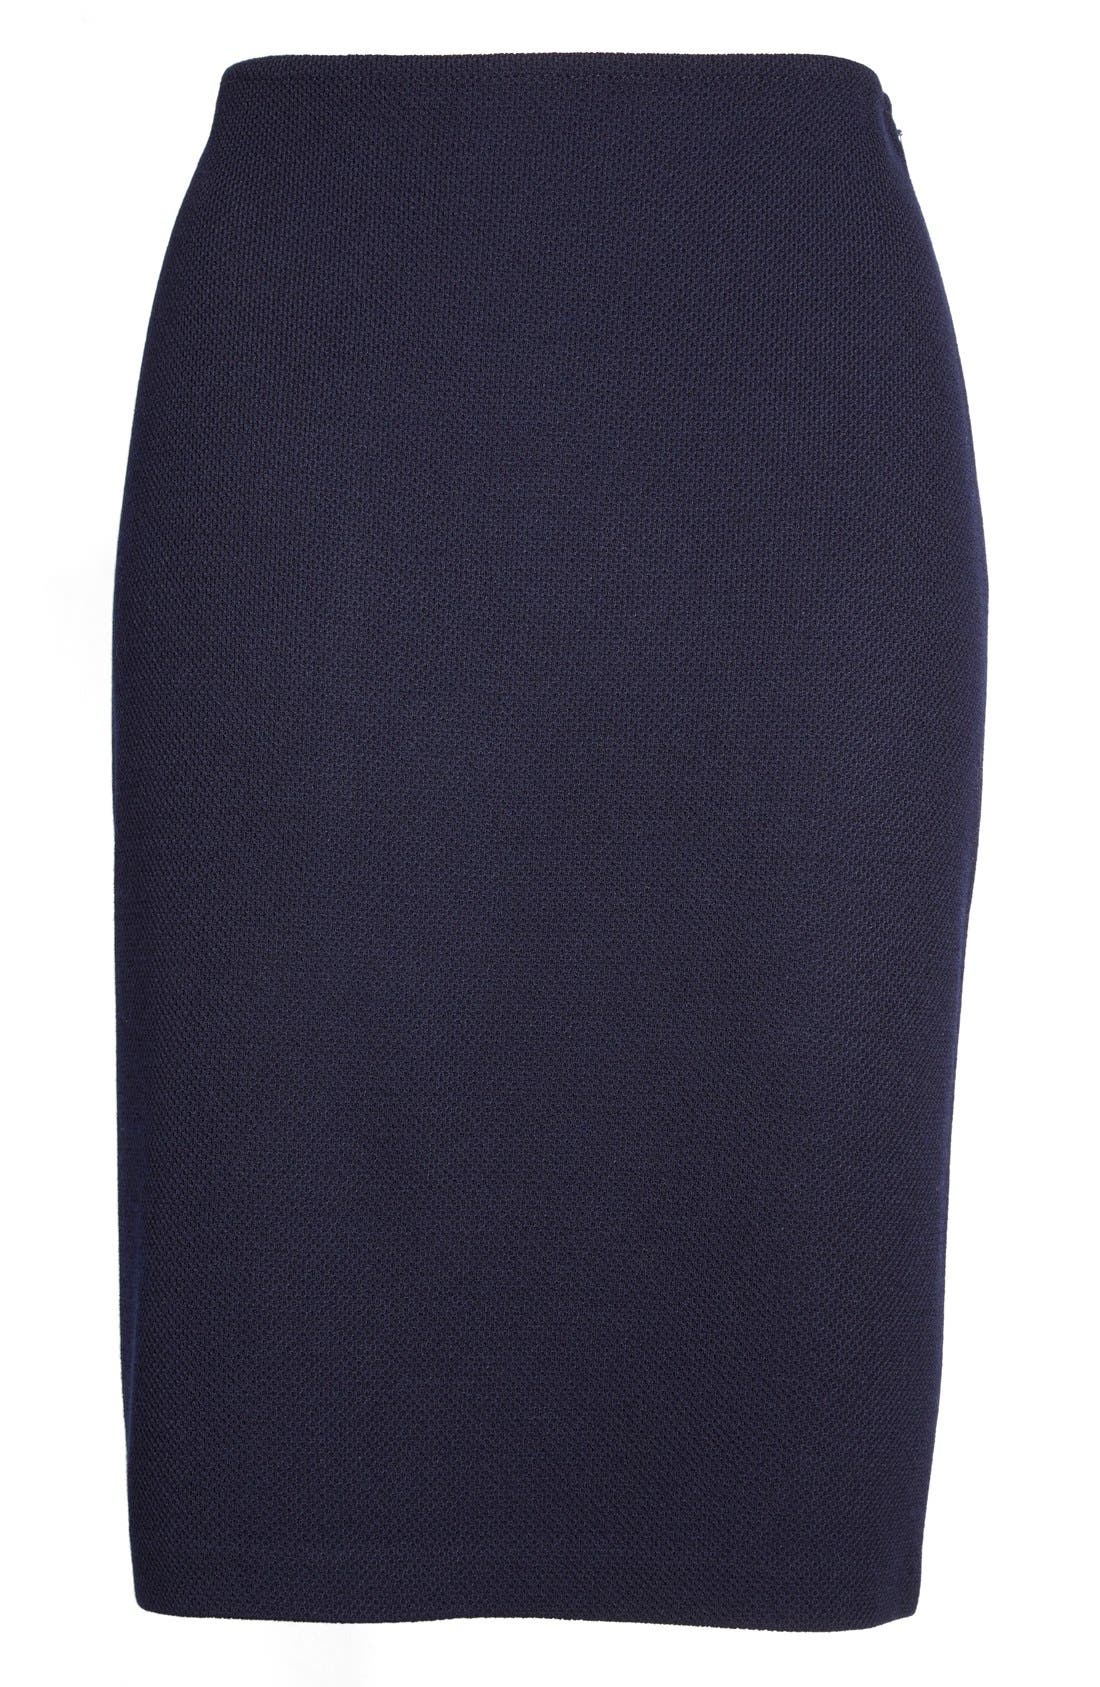 Alternate Image 4  - St. John Collection Milano Piqué Knit Pencil Skirt